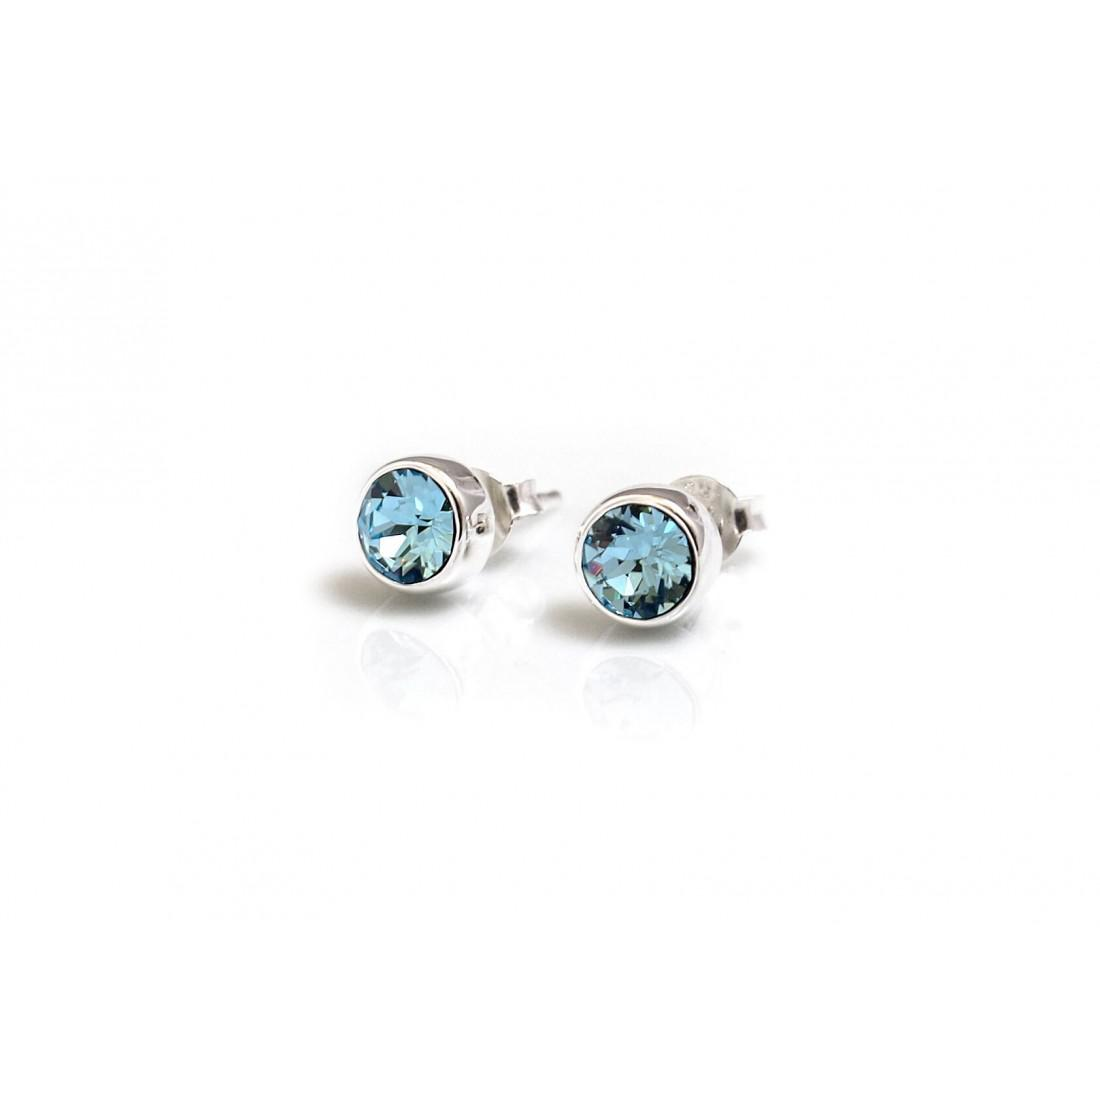 March Birthstone - Sterling Silver & Aquamarine Stud Earrings